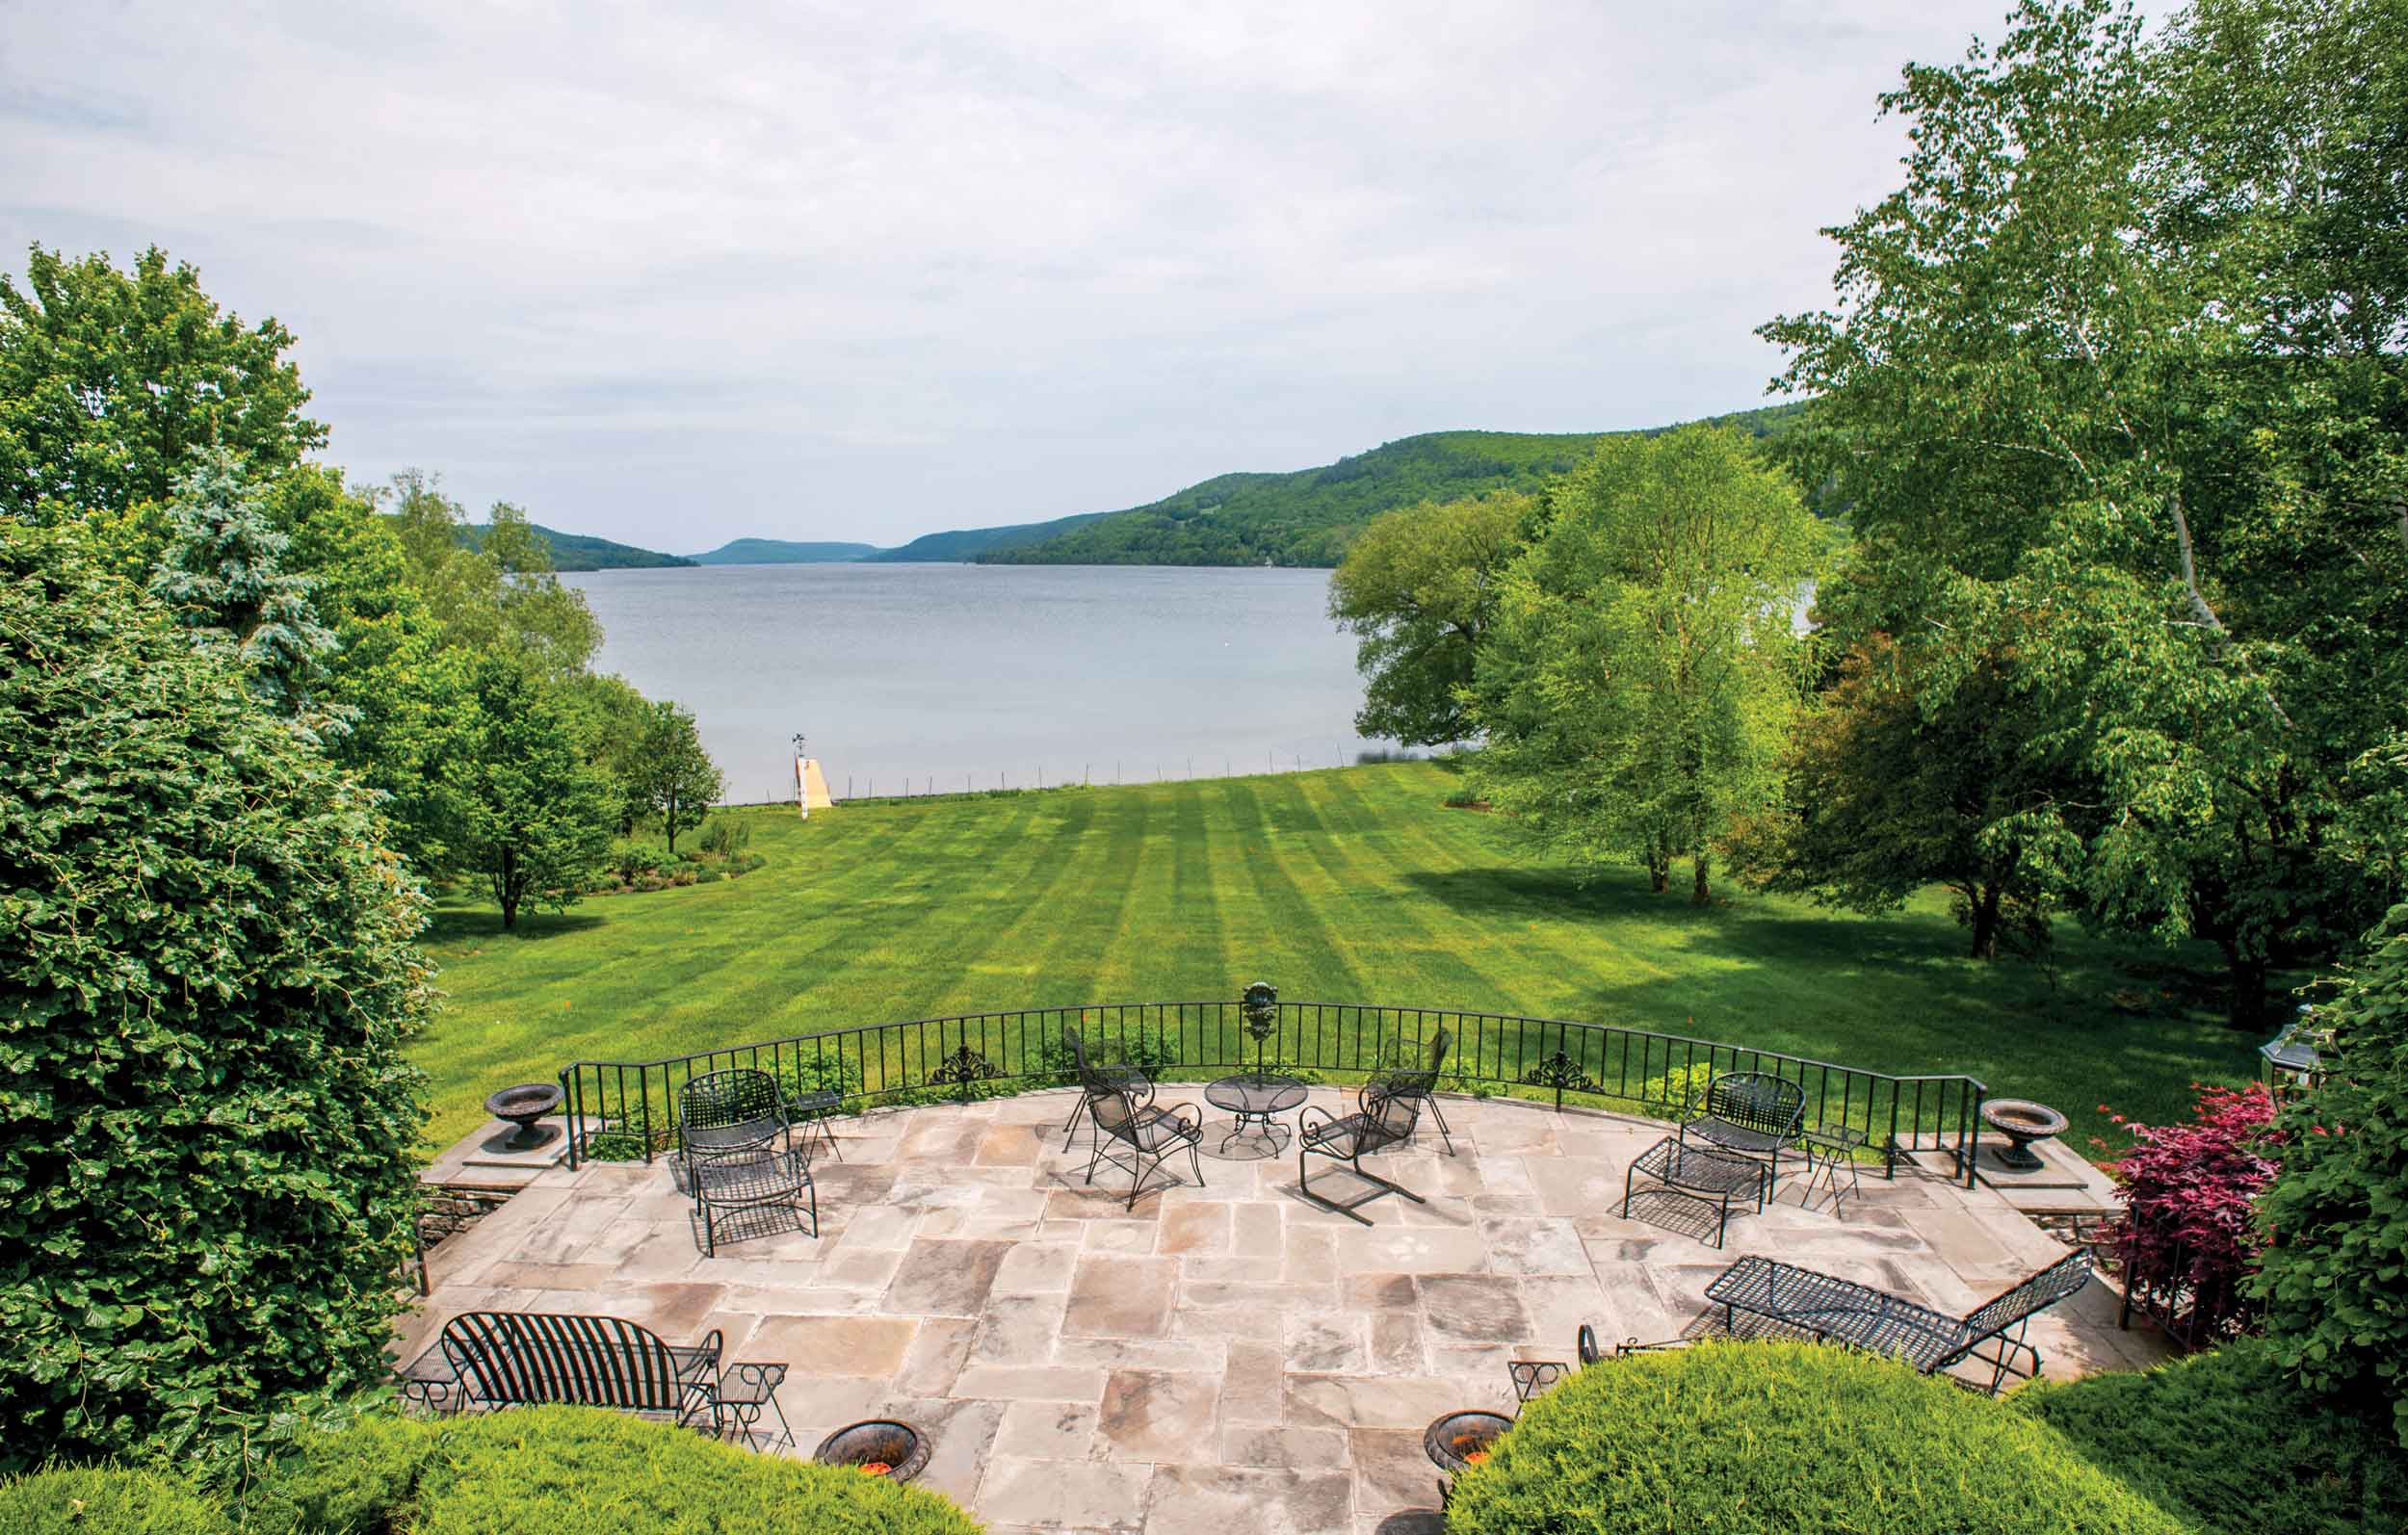 A field of dreams in Cooperstown, New York, on the shores of Lake Otsego